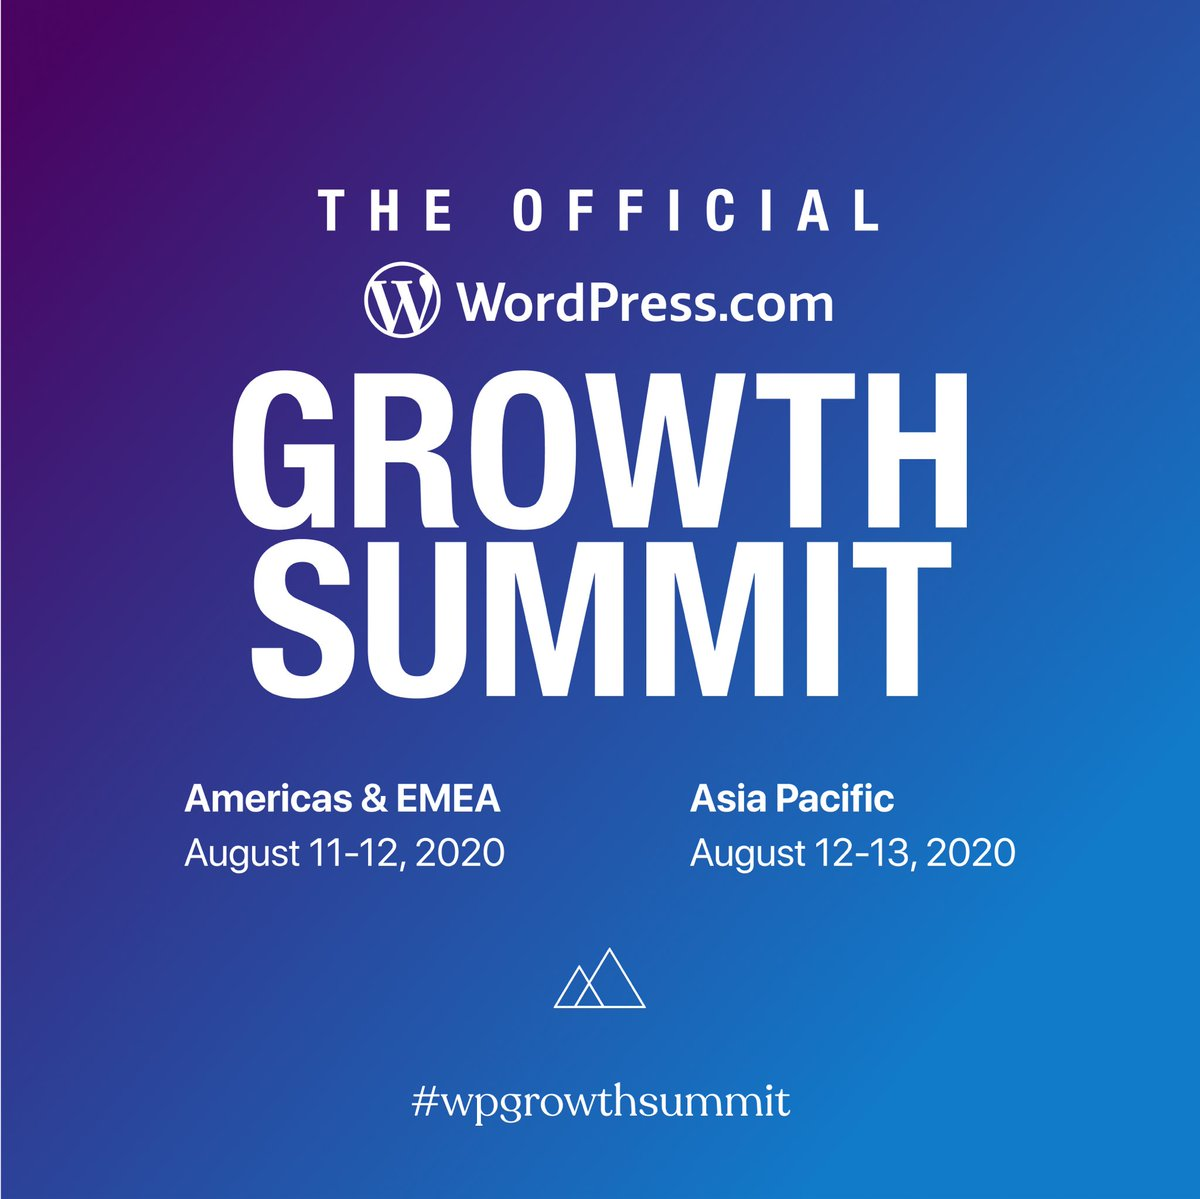 I will be LIVE on the @WordPress #wpgrowthsummit talking to the @monicavohara, the Chief Marketing Officer of @wordpressdotcom. Today, 9:45AM to 10:15AM IST. See you there!  (Discount Code: NAKULSHENOY20) https://t.co/5BLsI01qji